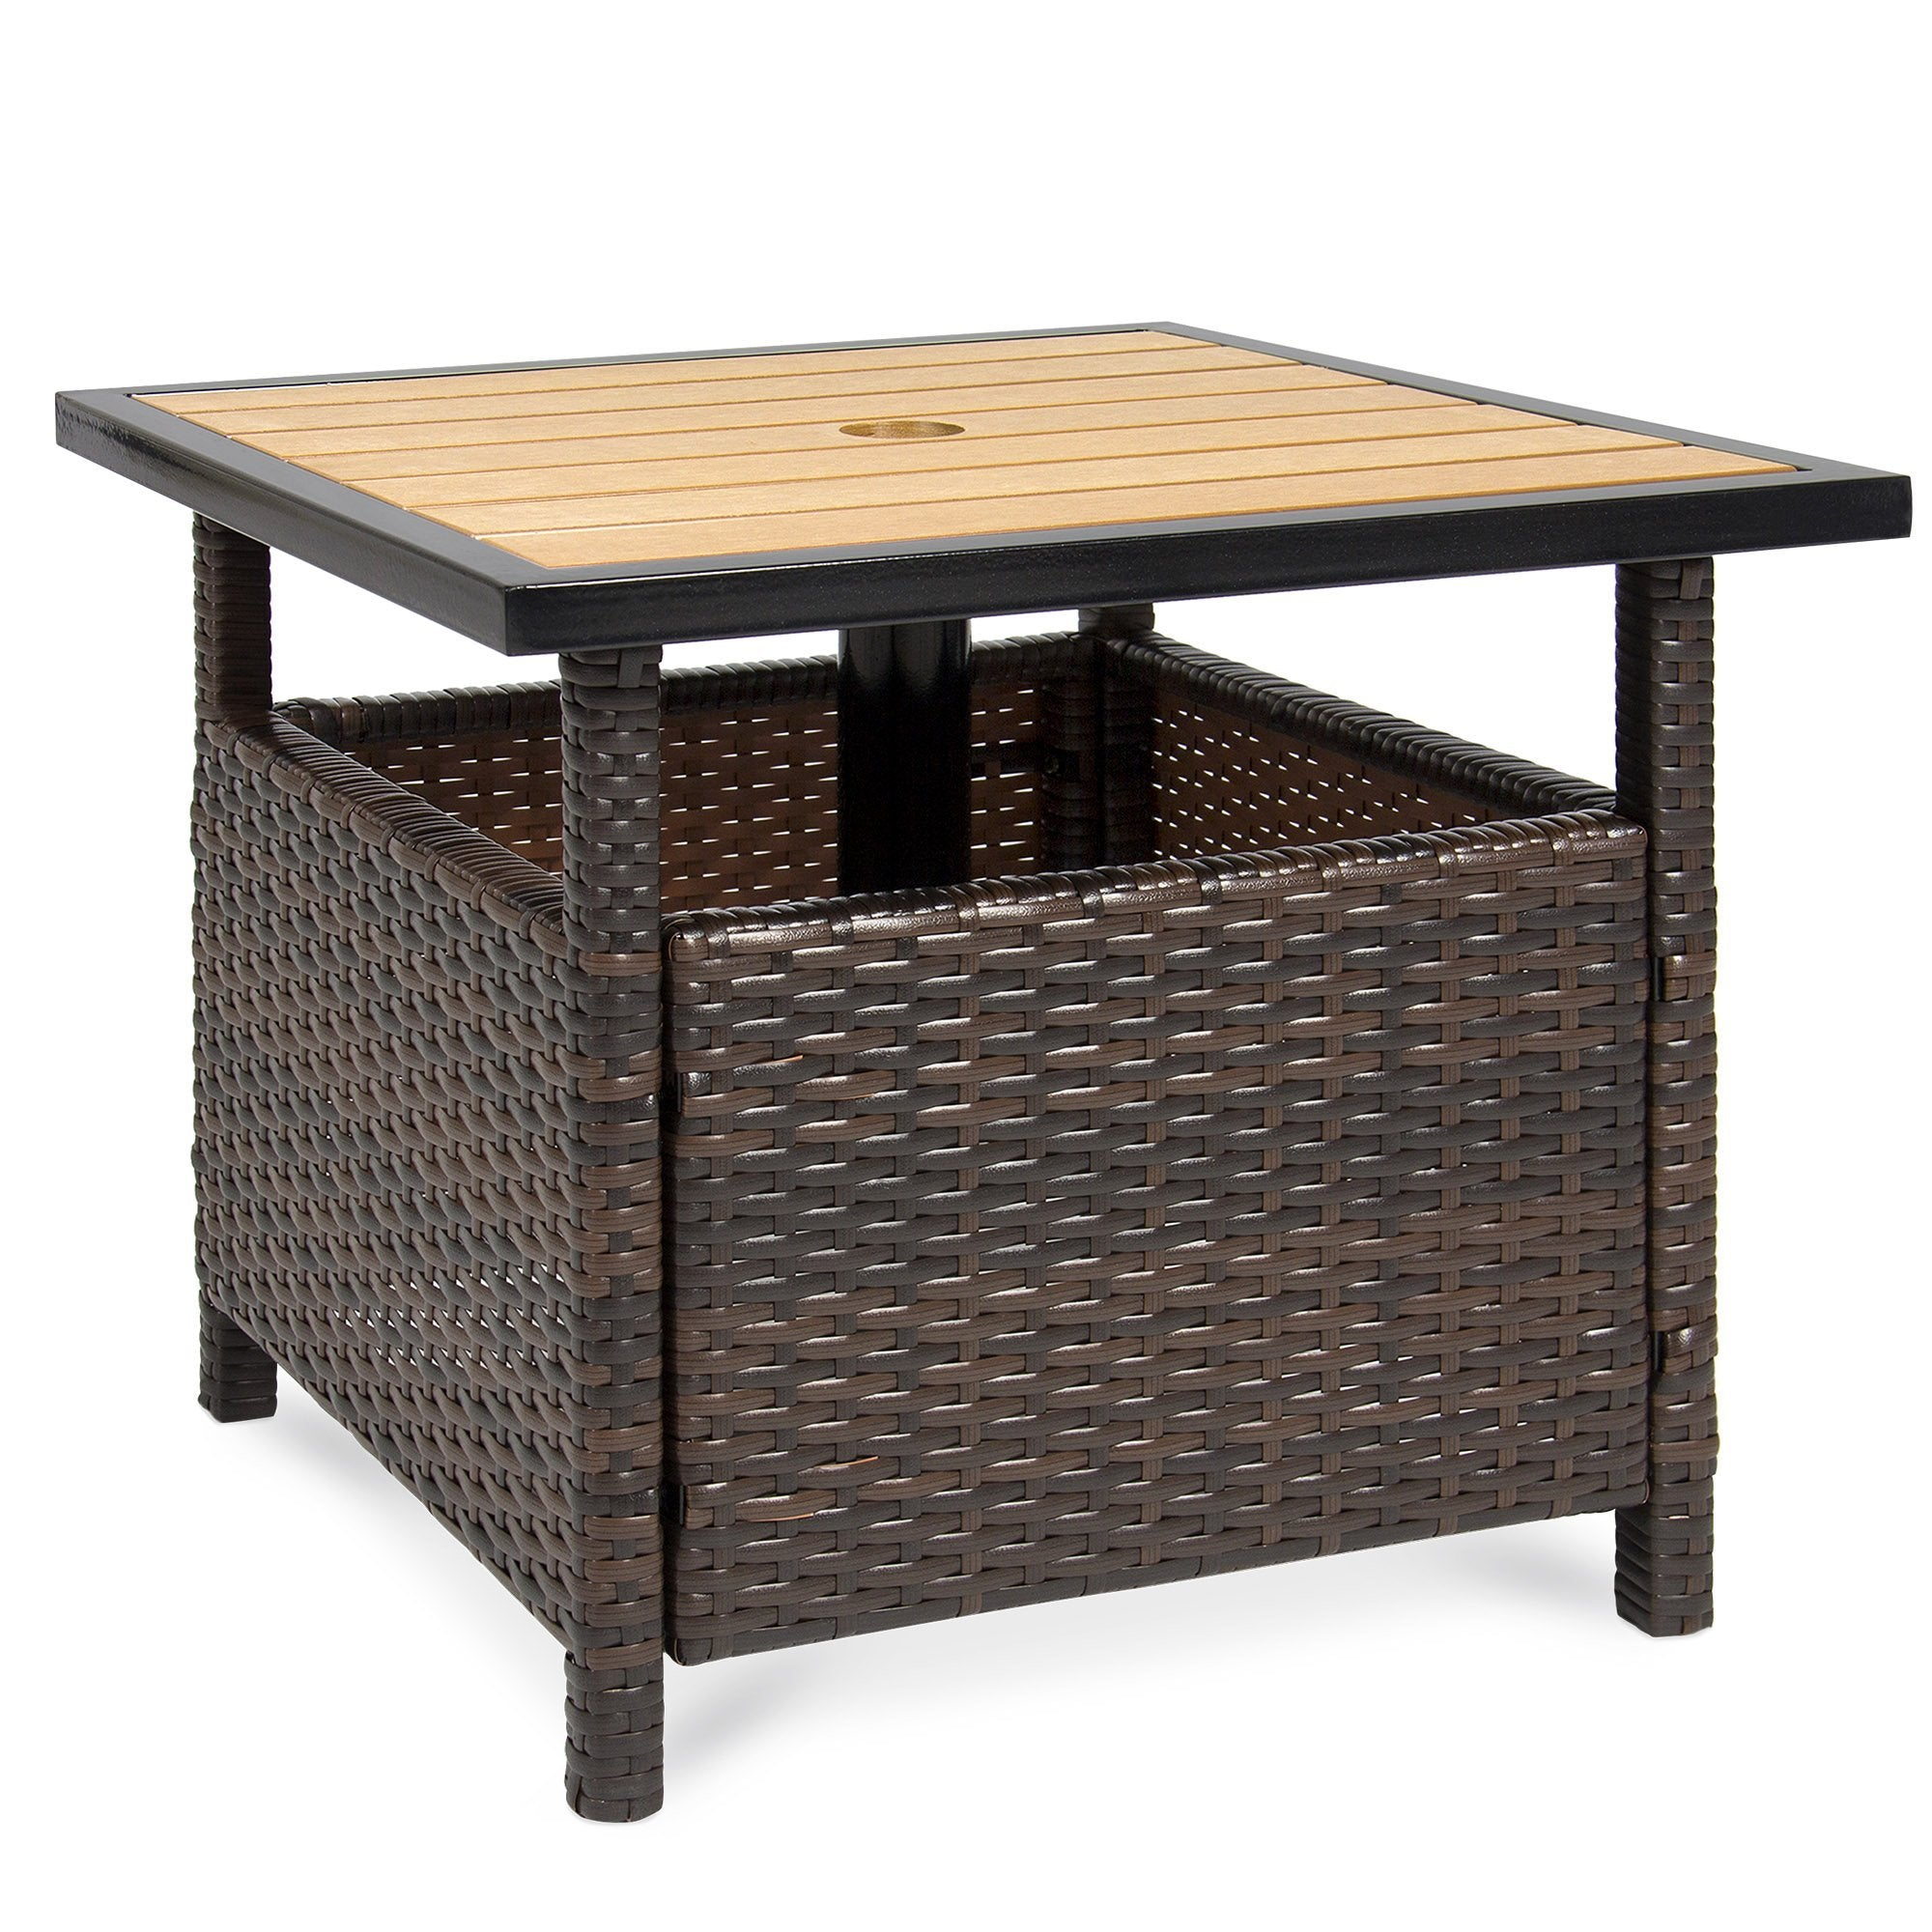 Outdoor Wicker Patio Umbrella Stand Table Accent Furniture w/ Steel Frame